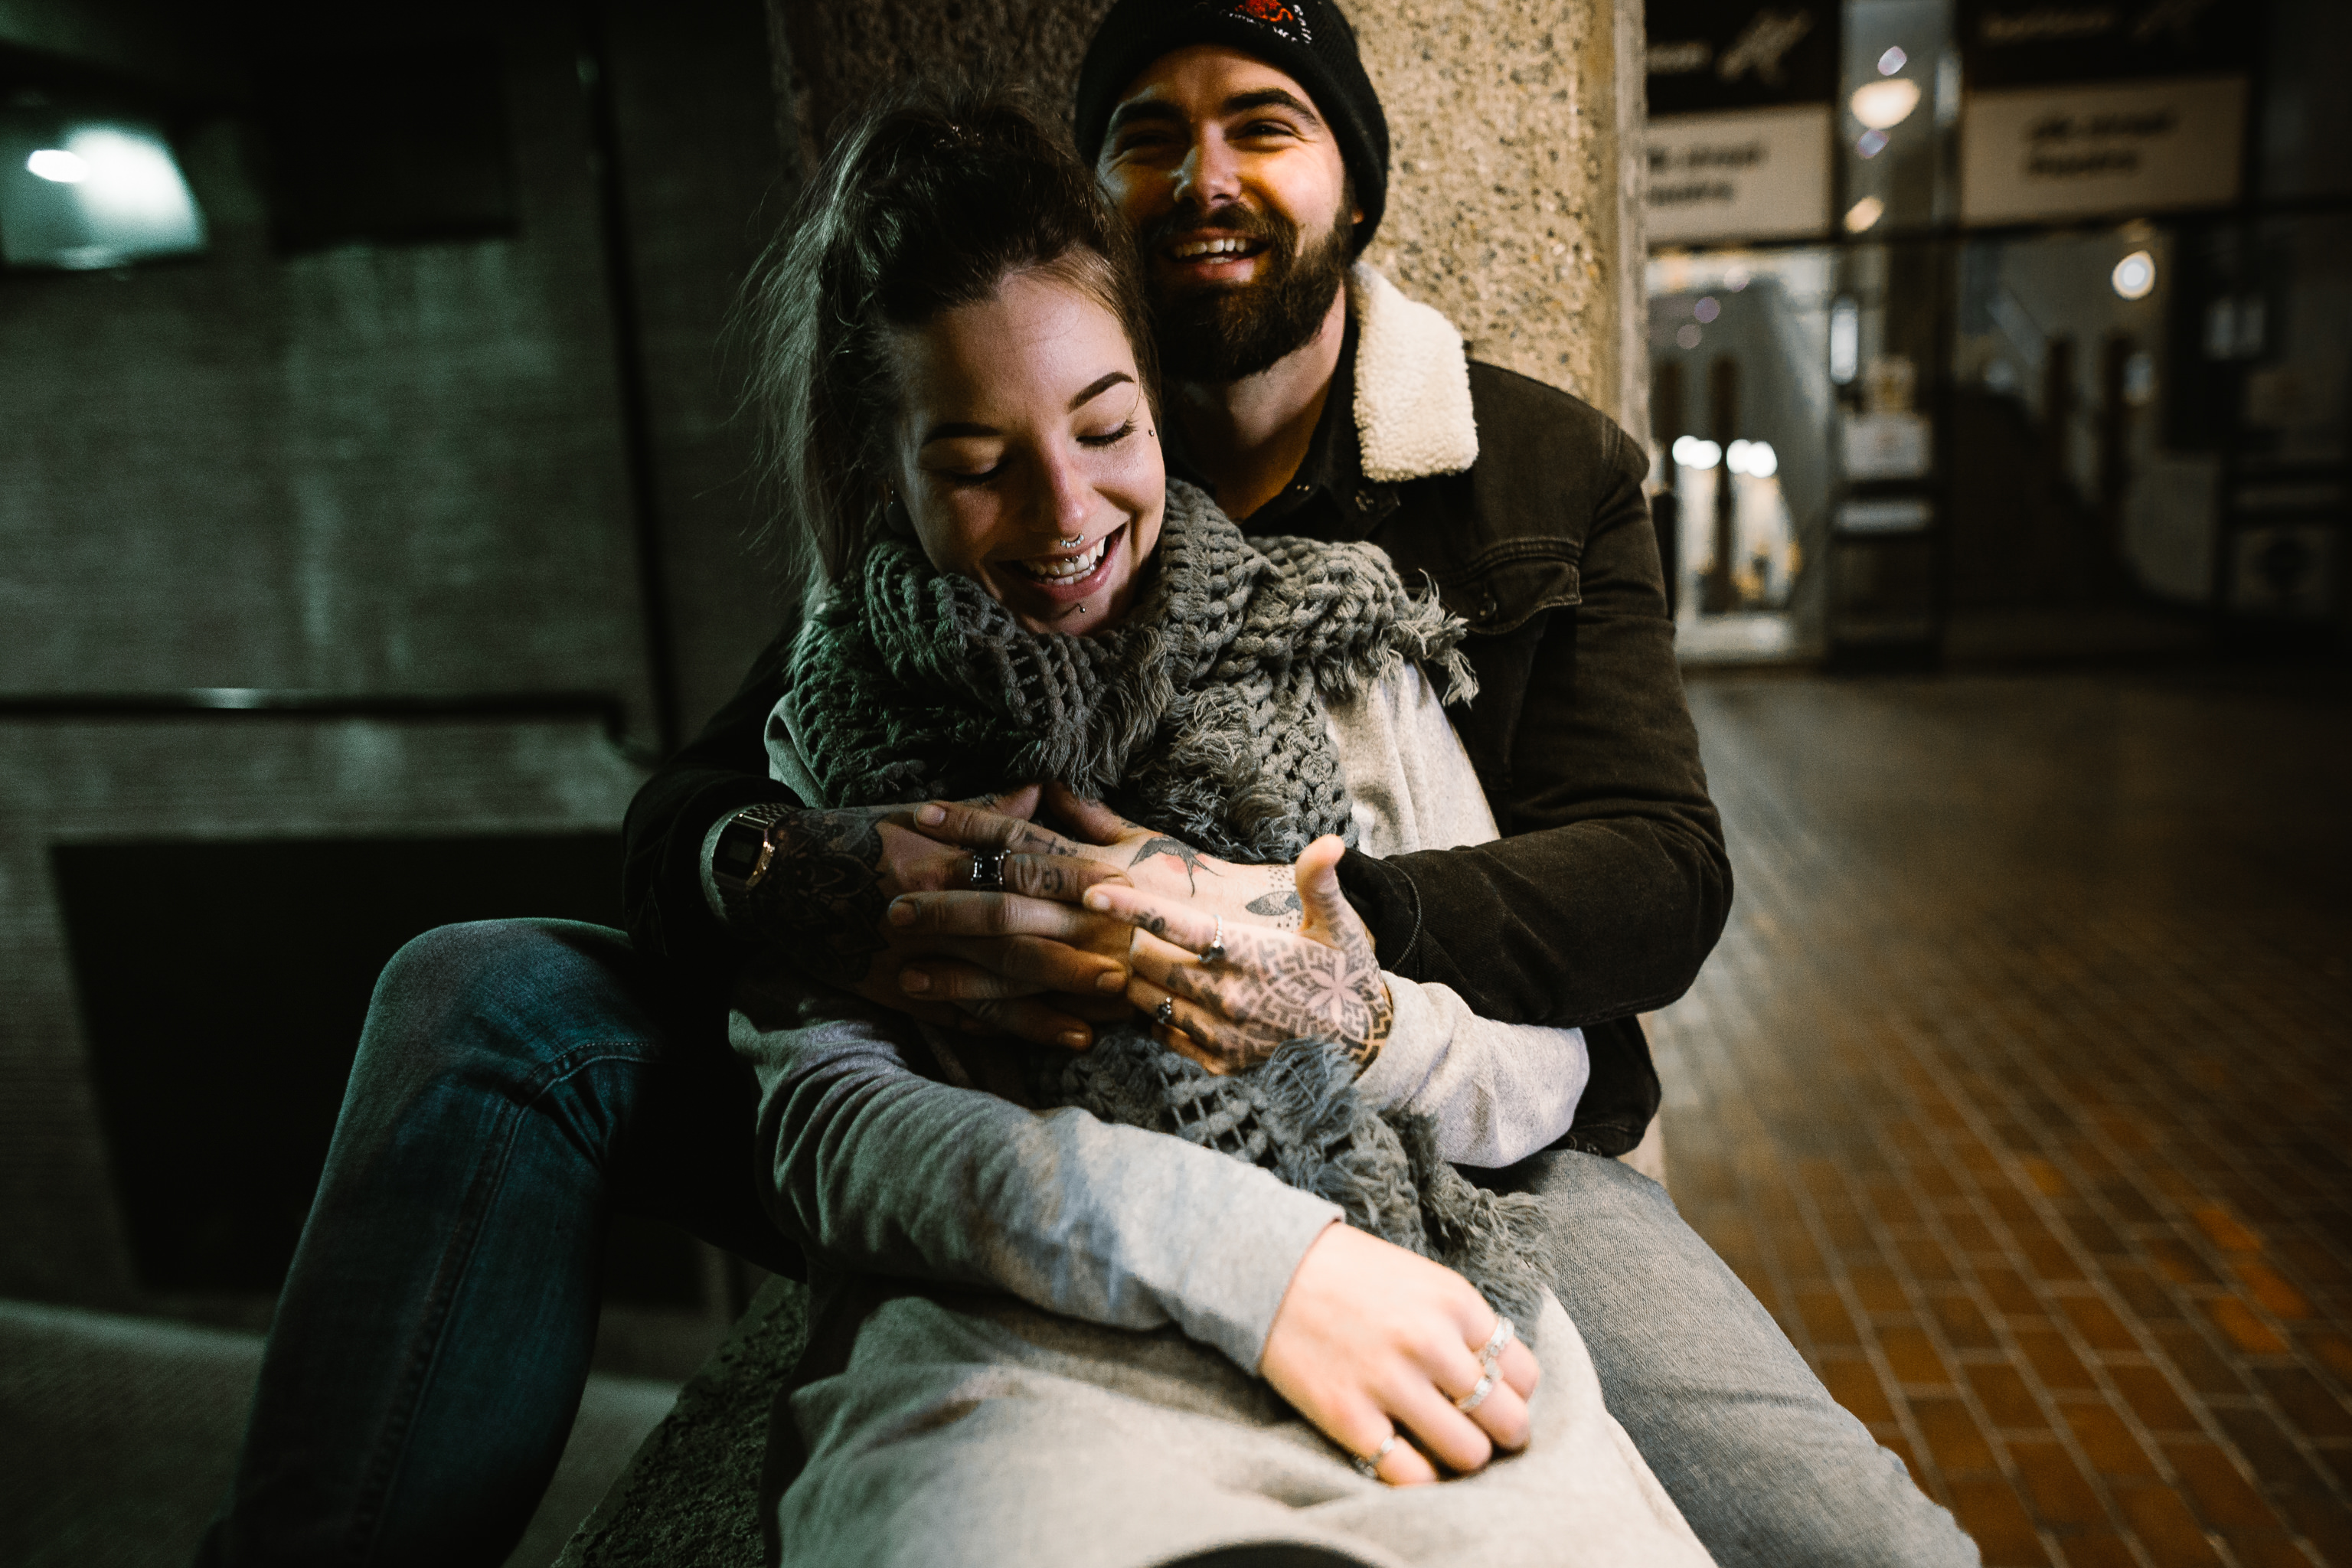 London engagement shoot at the barbican centre by london wedding photographer